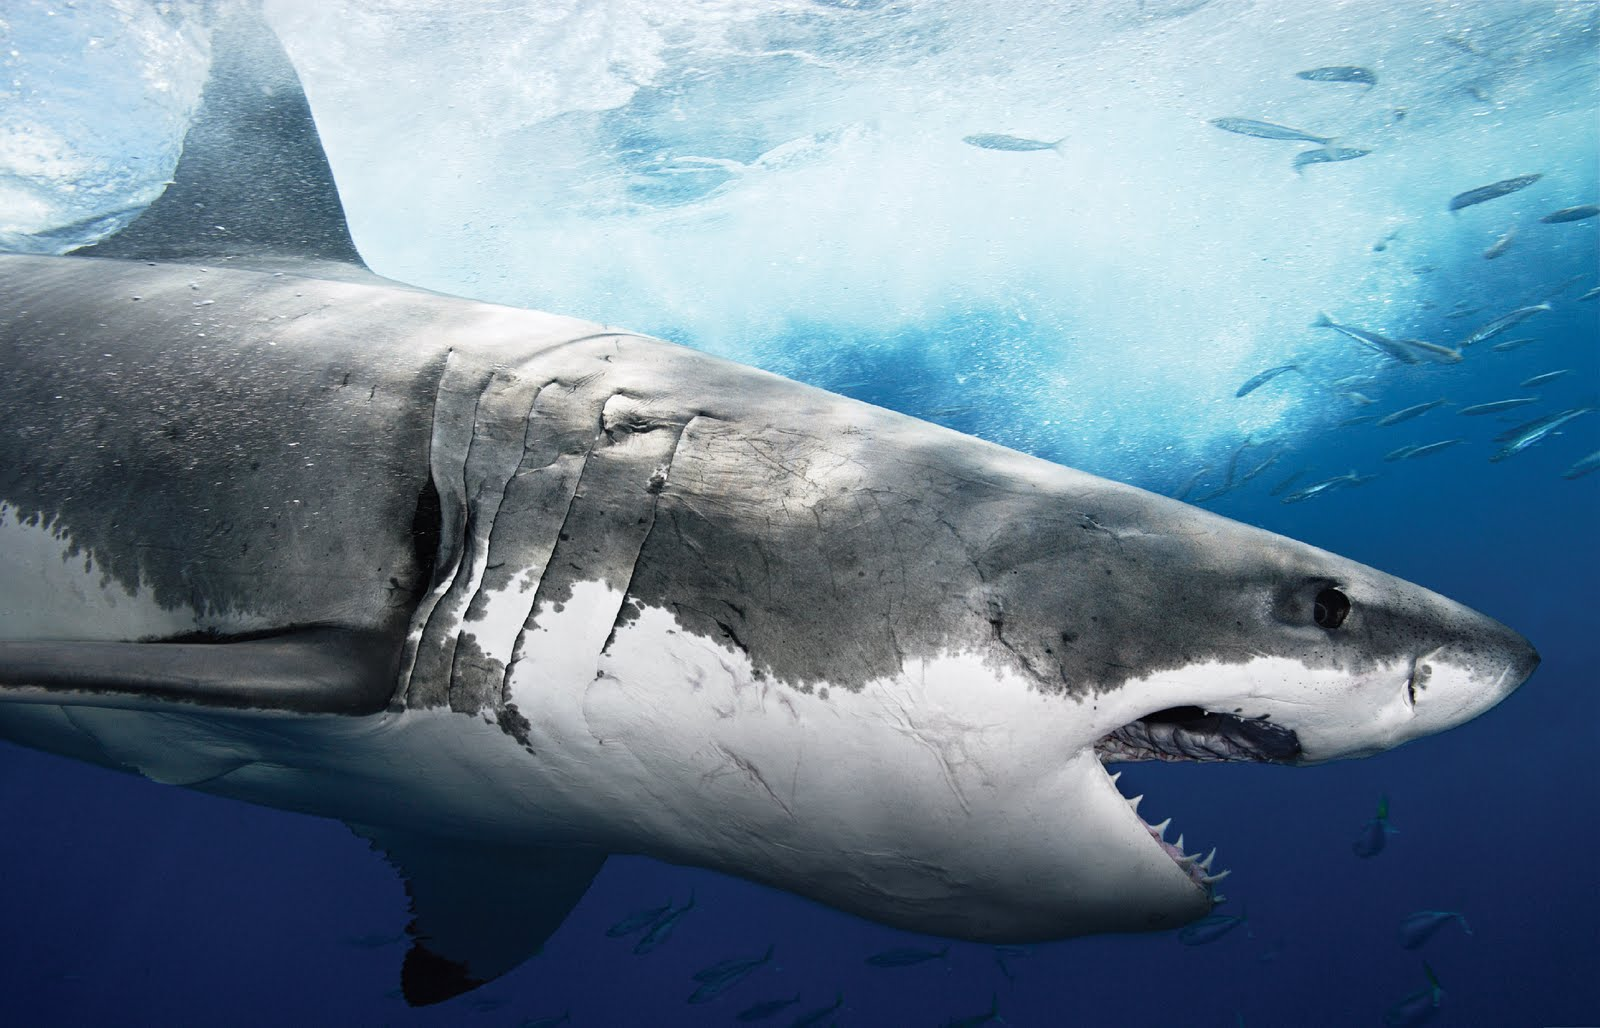 The Great White Shark | Sharks High Definition Backgrounds, Marine, Sea,